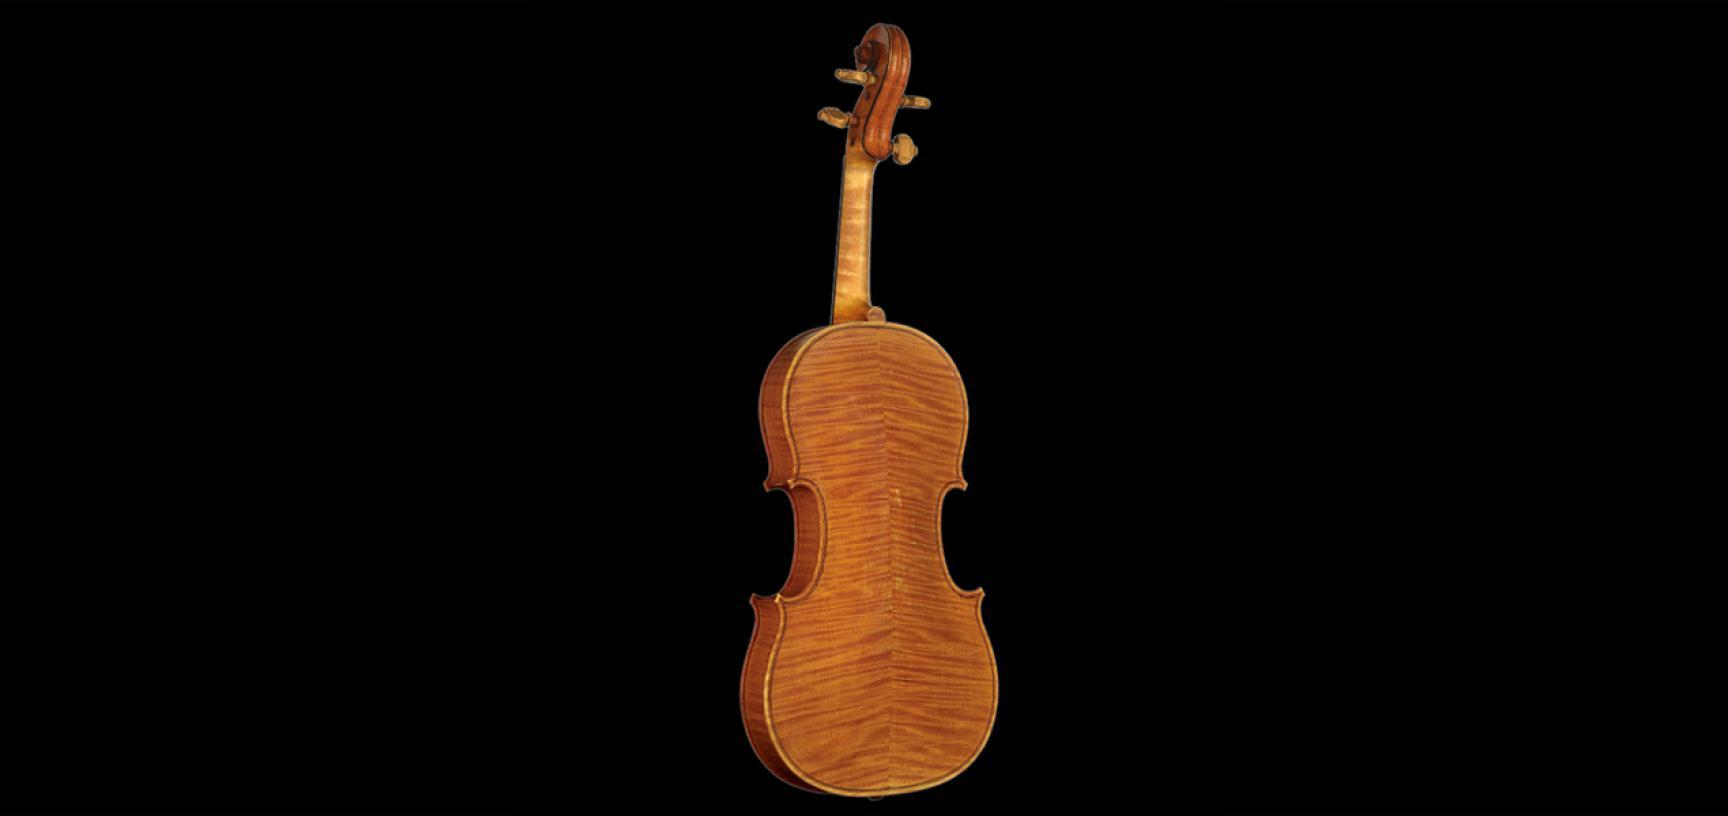 The 'Messiah' Violin by Antonio Stradivari